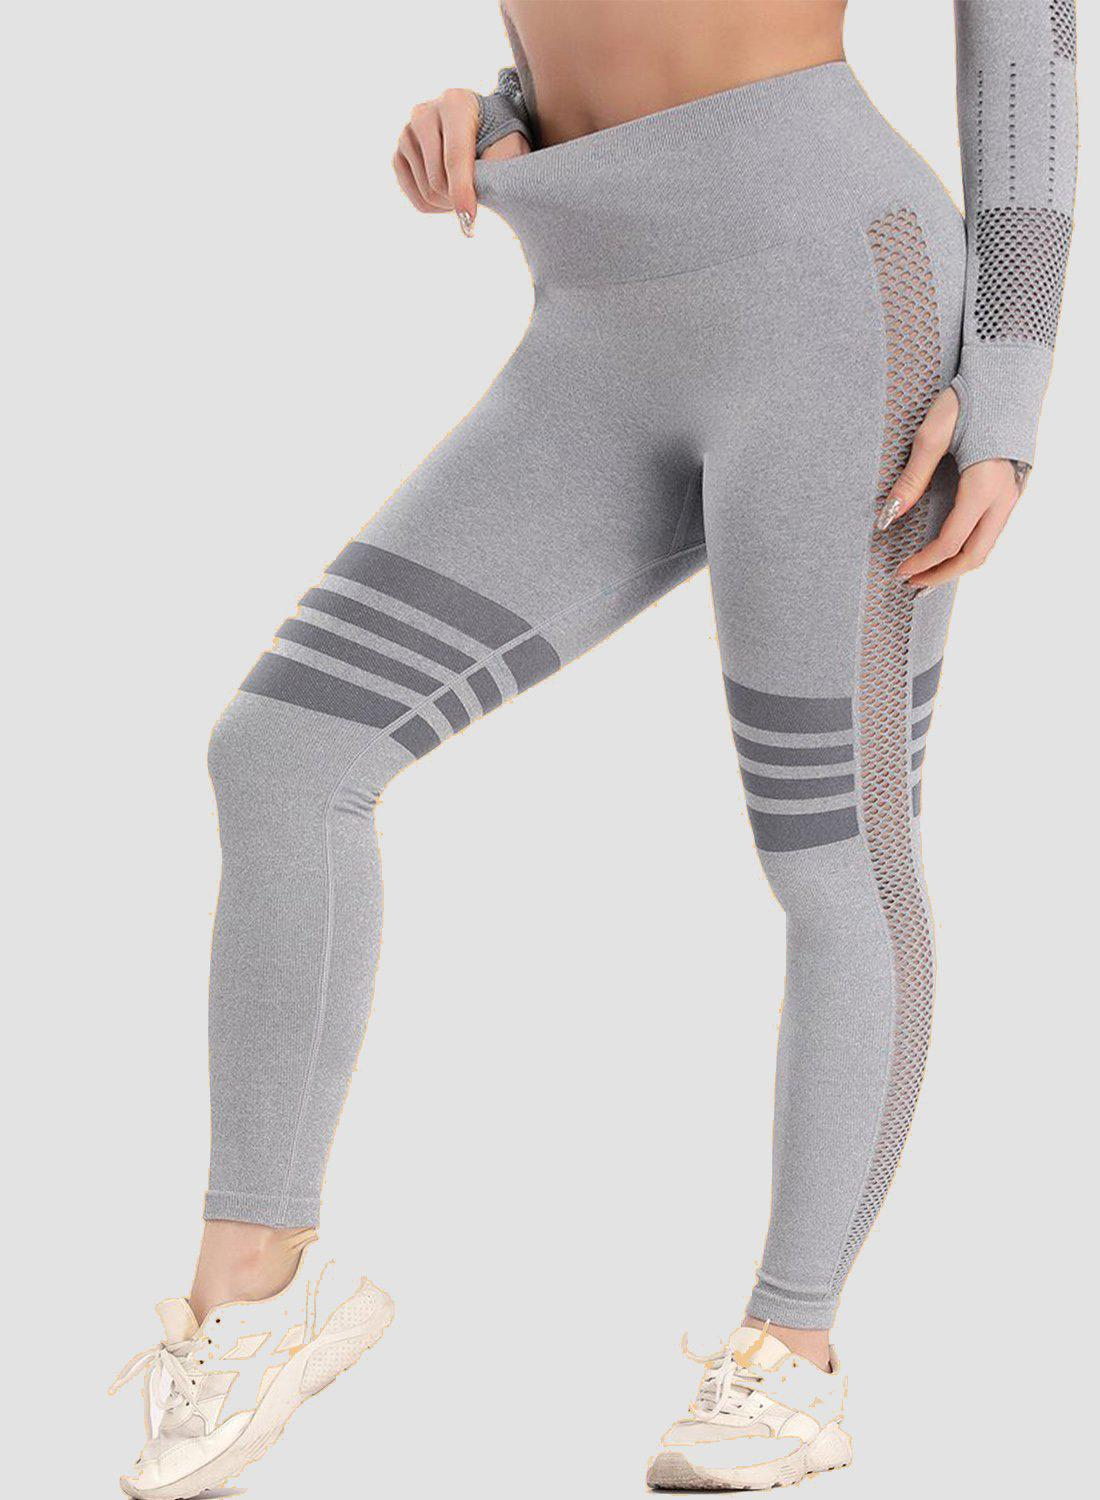 Hollow Seamless High Waist Stripes Yoga Pants-JustFittoo